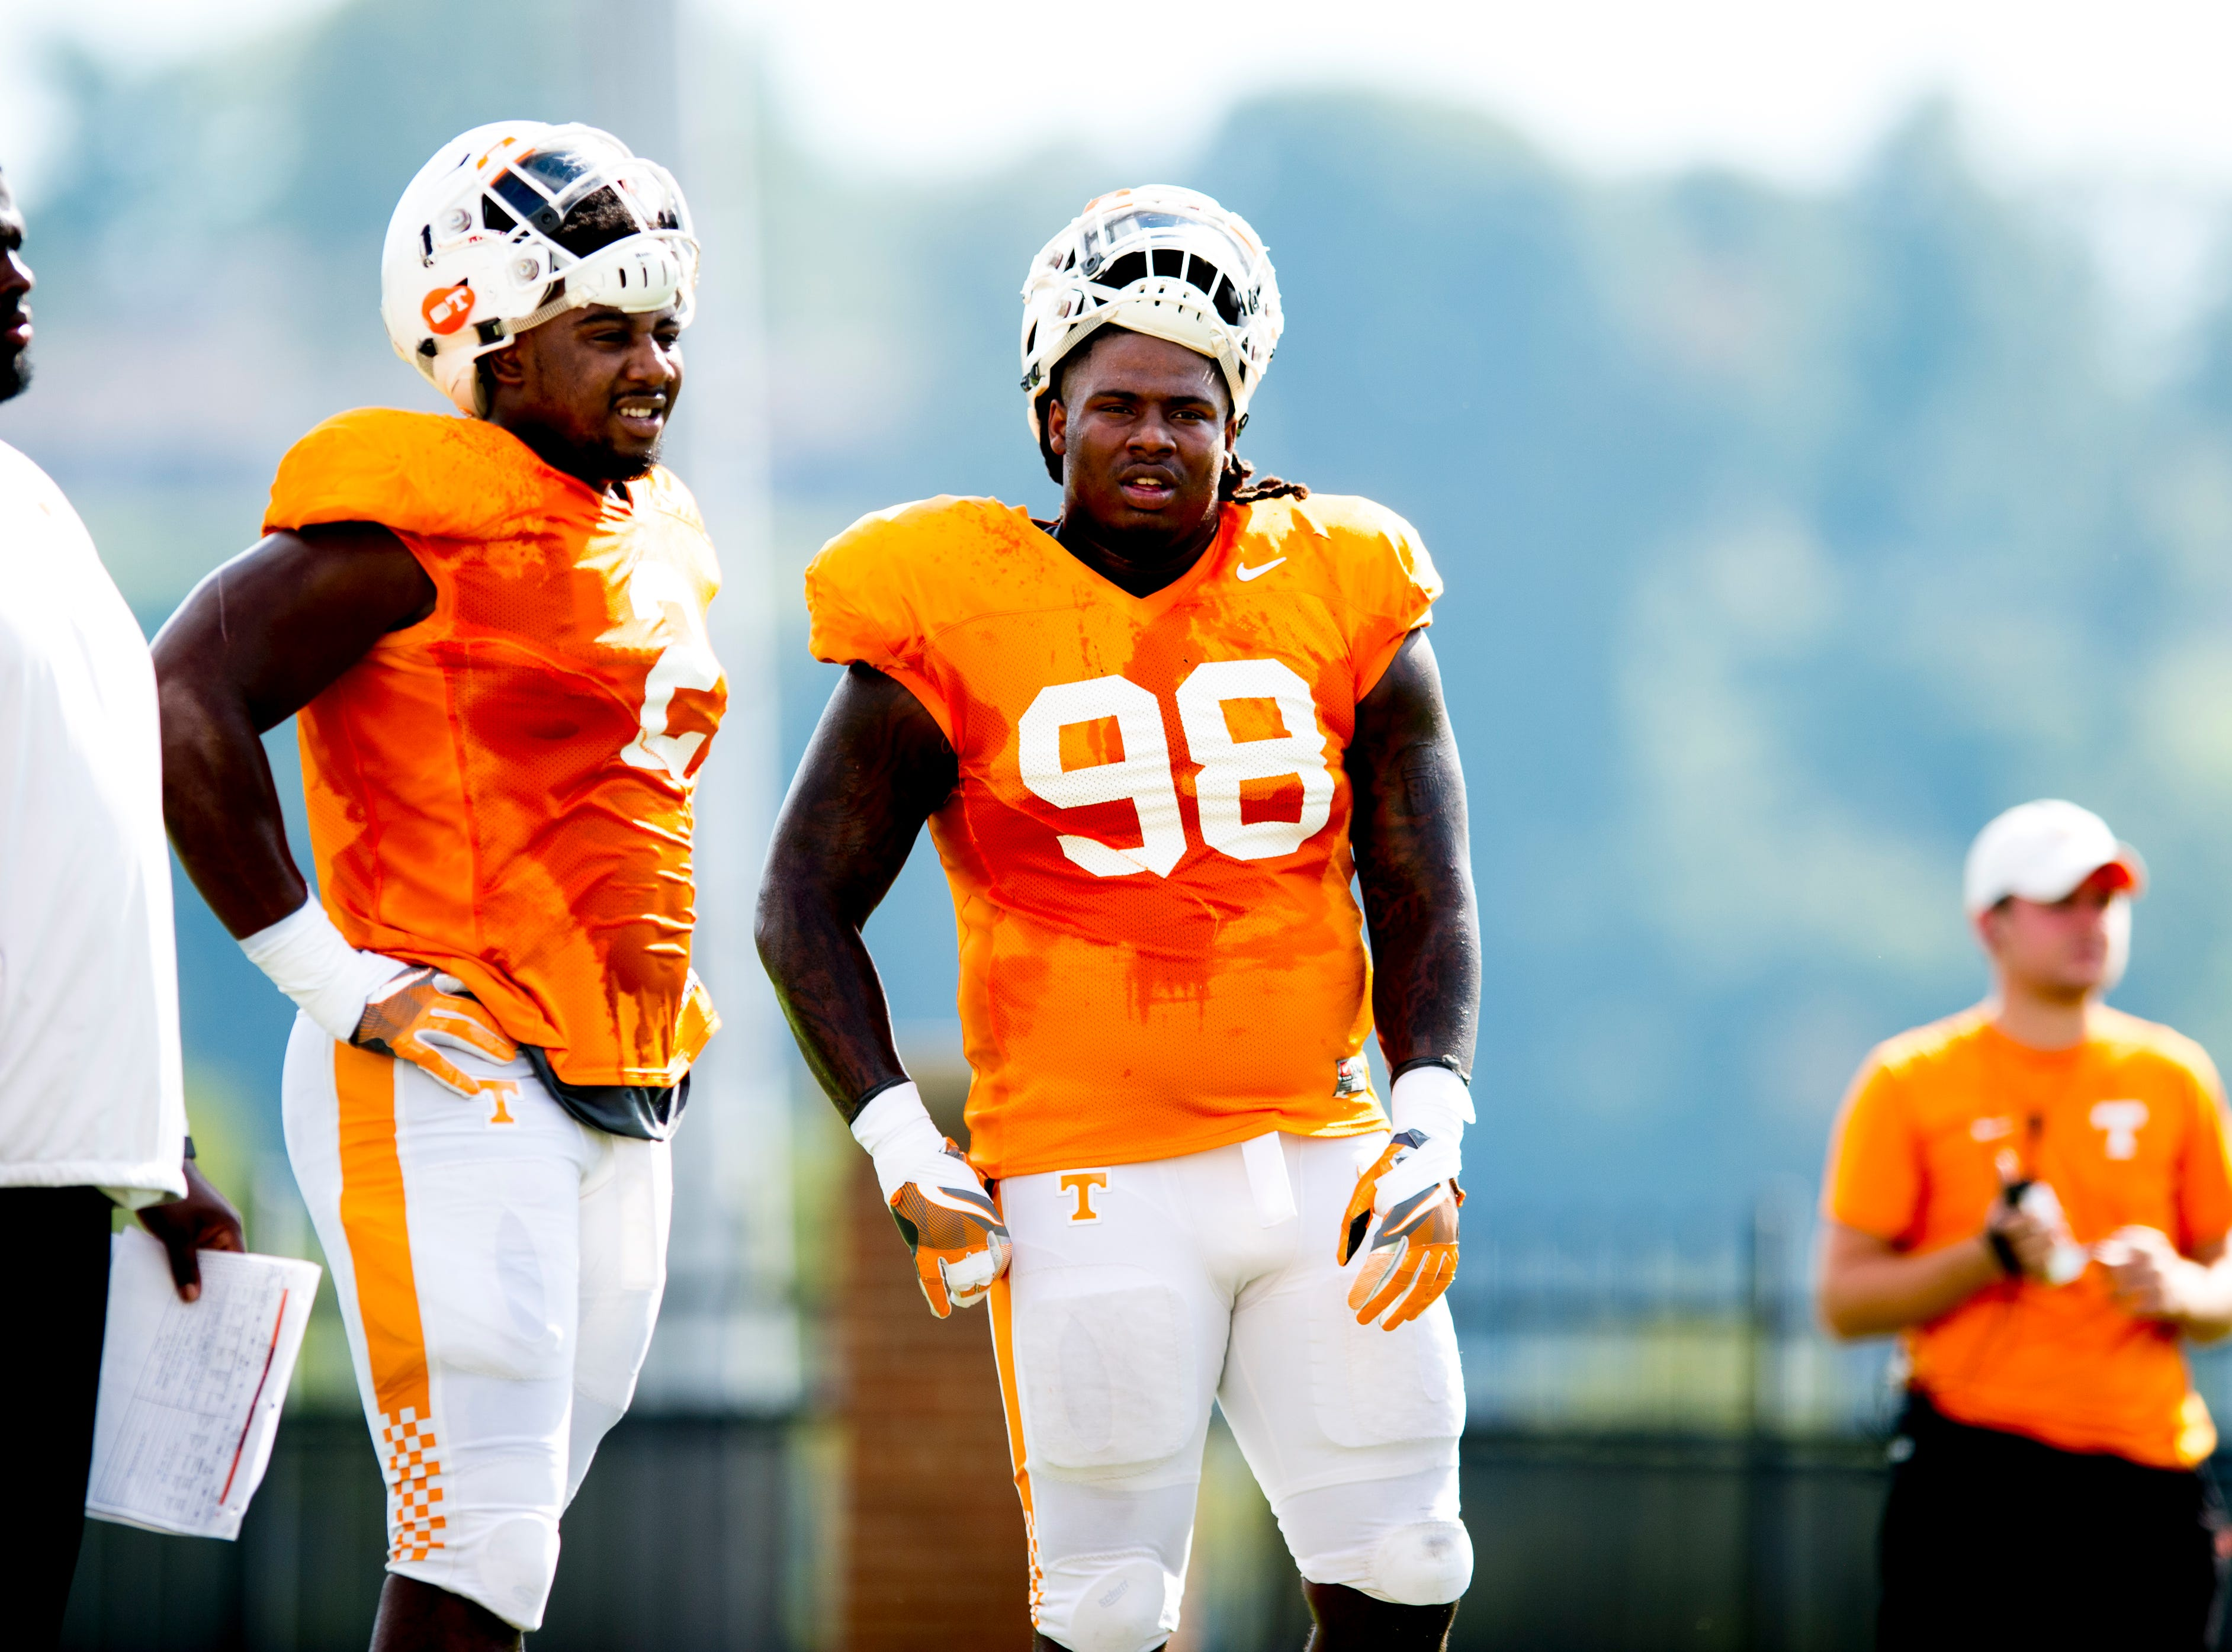 Tennessee defensive lineman Shy Tuttle (2) and Tennessee defensive lineman Alexis Johnson Jr. (98) take a break during Tennessee fall football practice at Haslam Field in Knoxville, Tennessee on Wednesday, September 12, 2018.